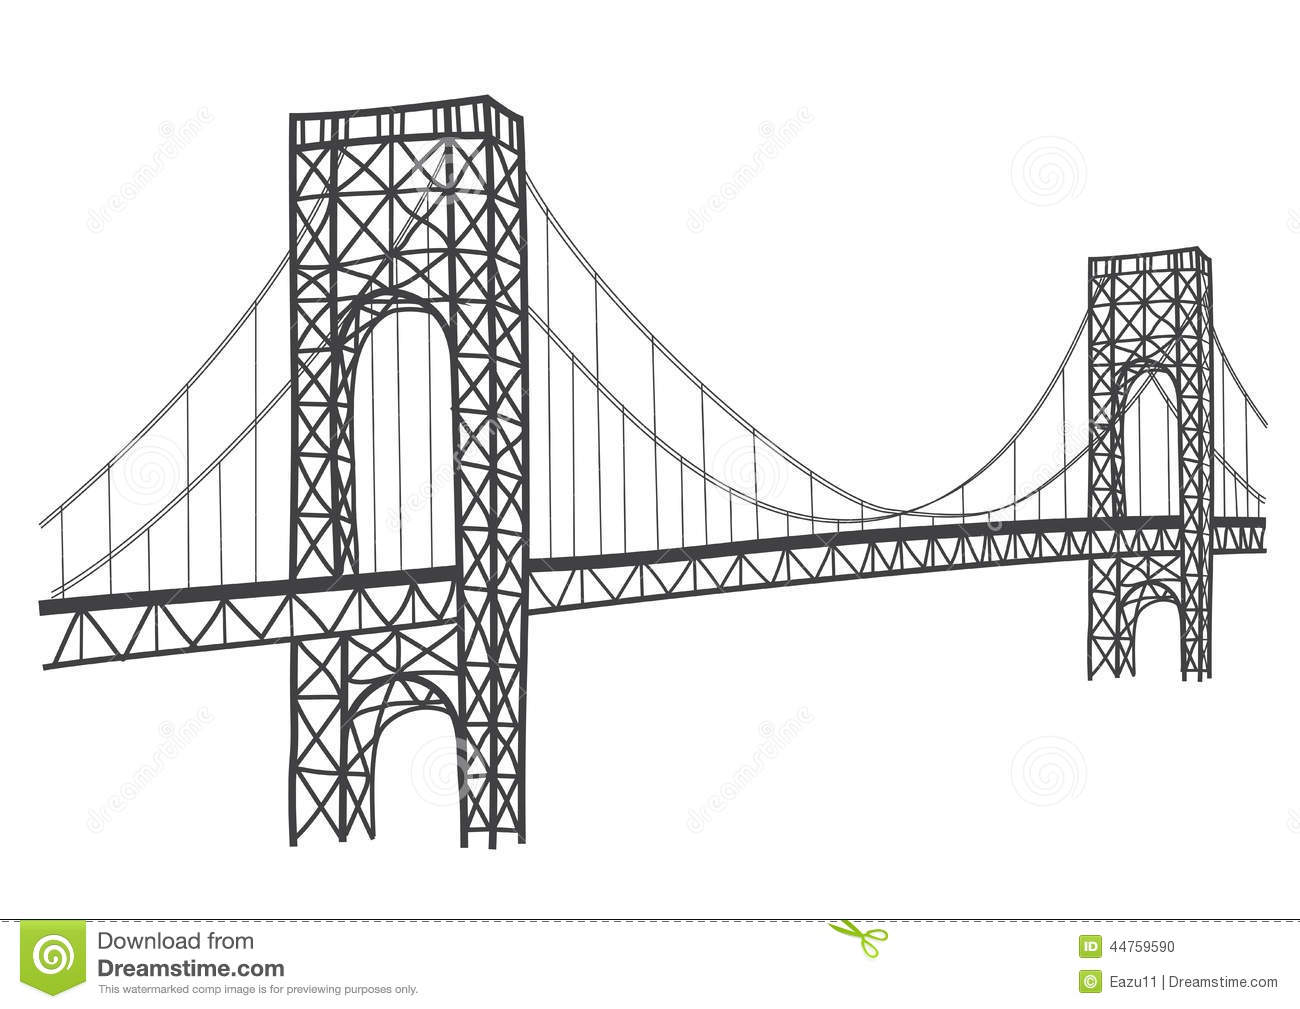 Drawn bridge civil engineering Clip Free Panda Images bridge%20clipart